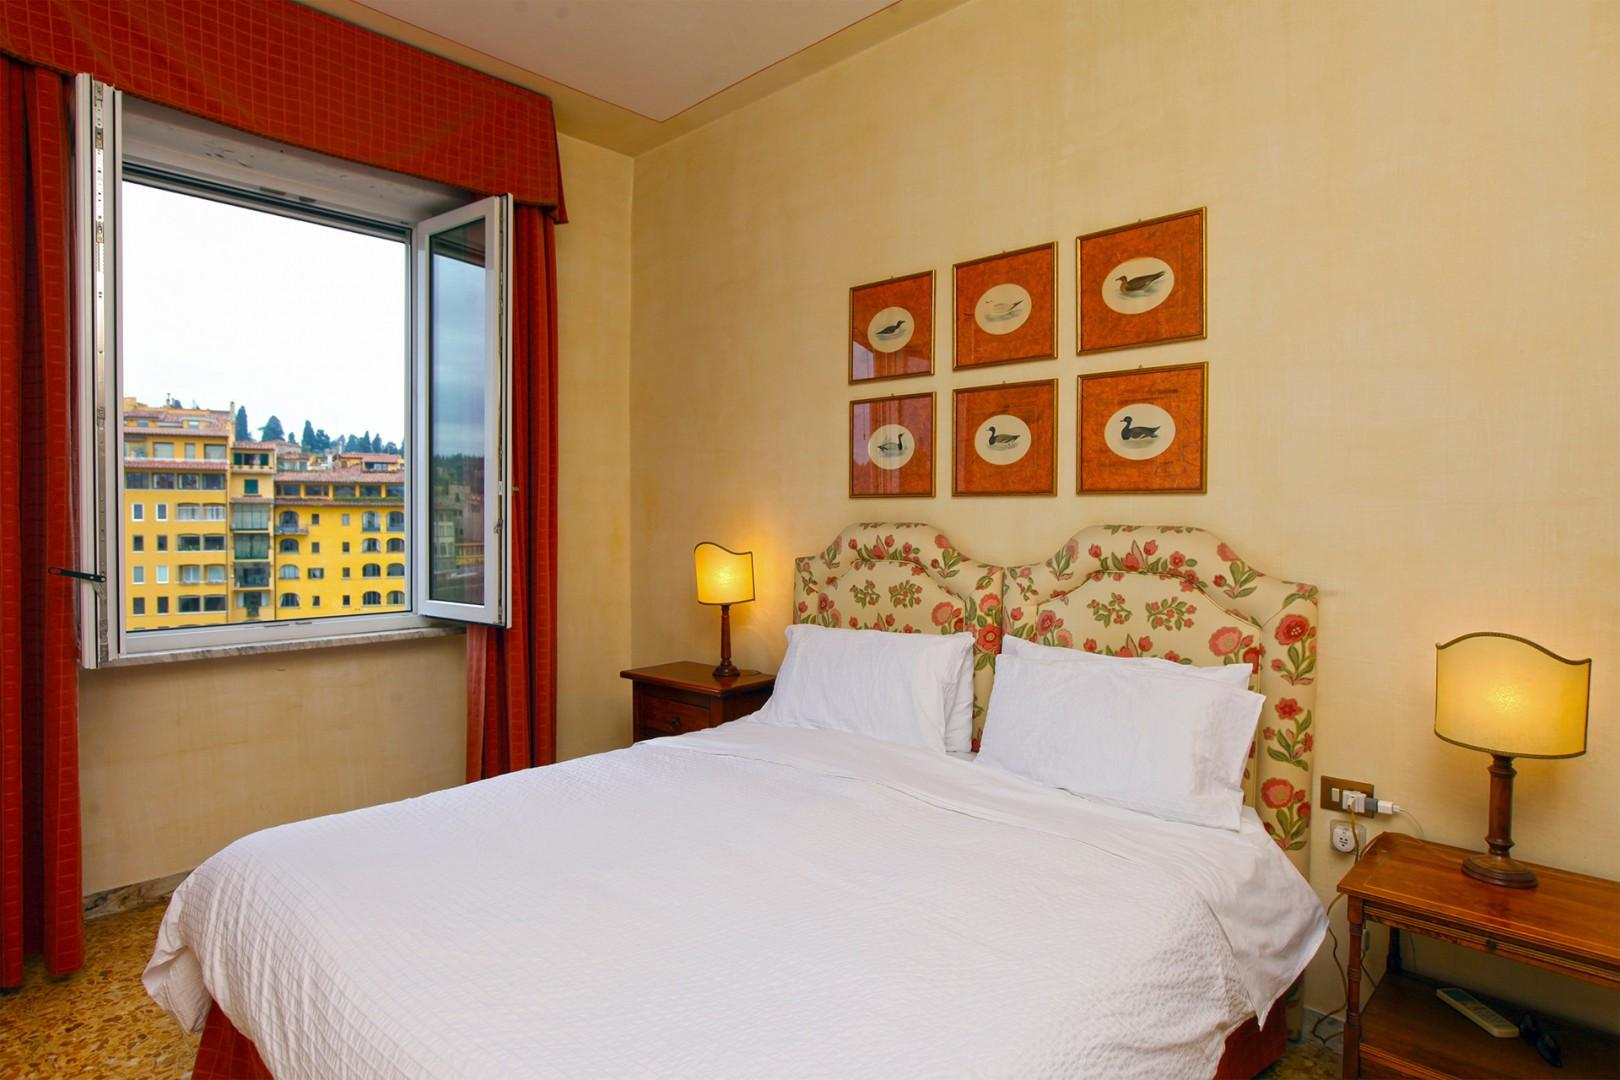 Bedroom 1 has Arno river views. Beds can be prepared together or as two beds.